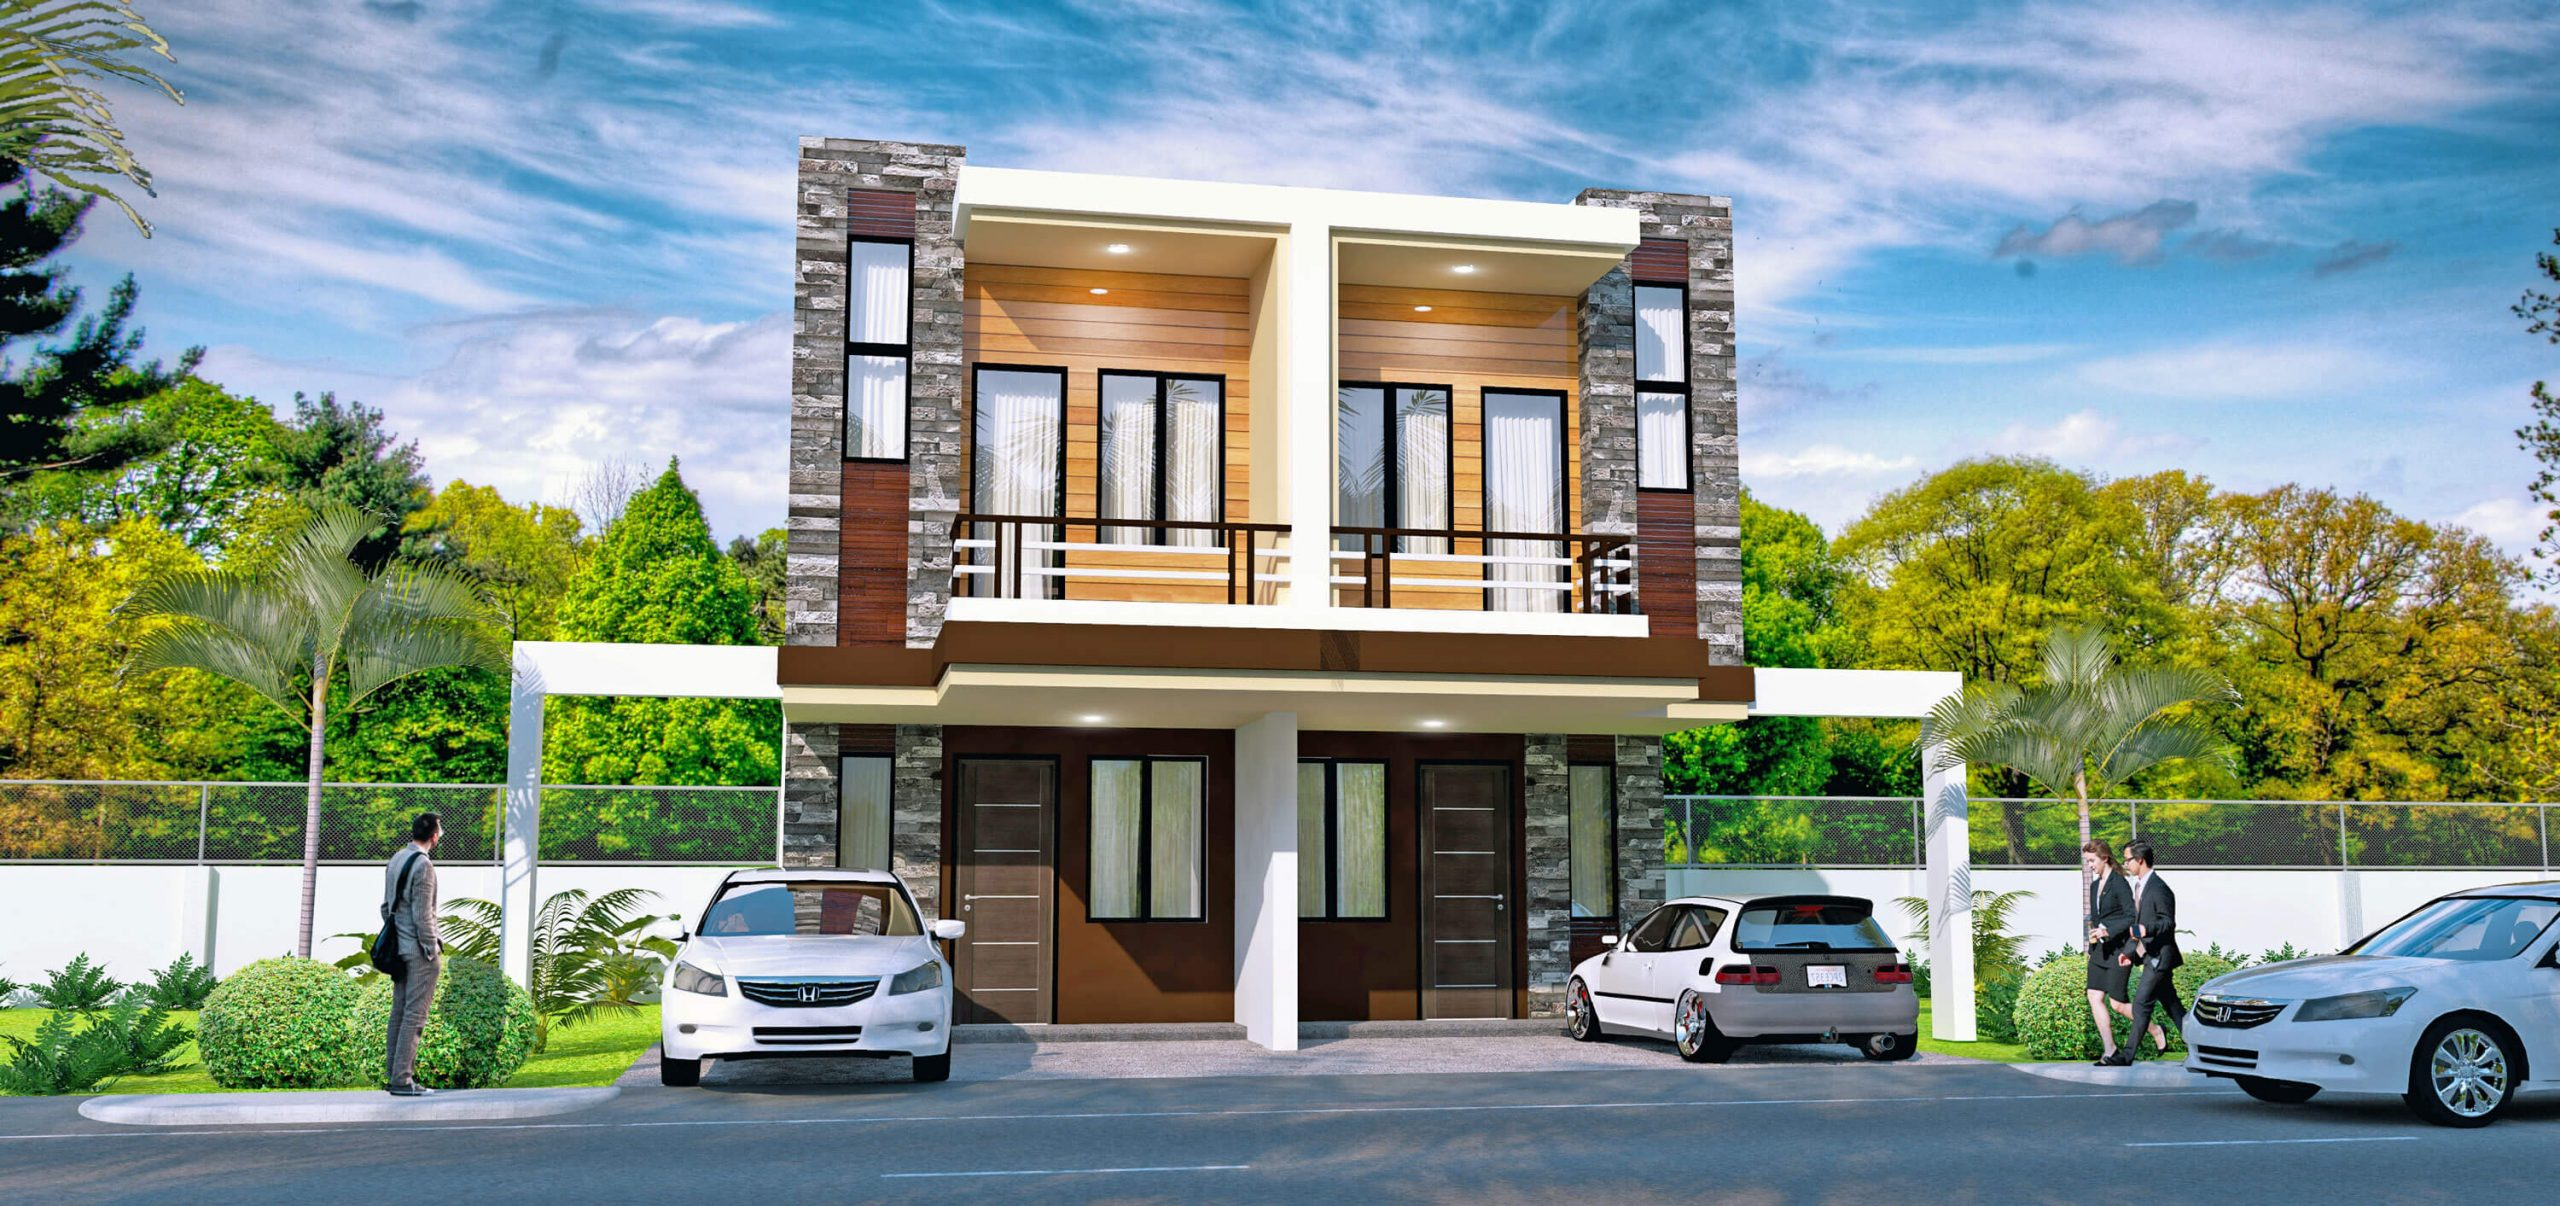 The project has a mix of townhouse, single attached, single detached, and duplex units that range from P3.7 to 5 million.